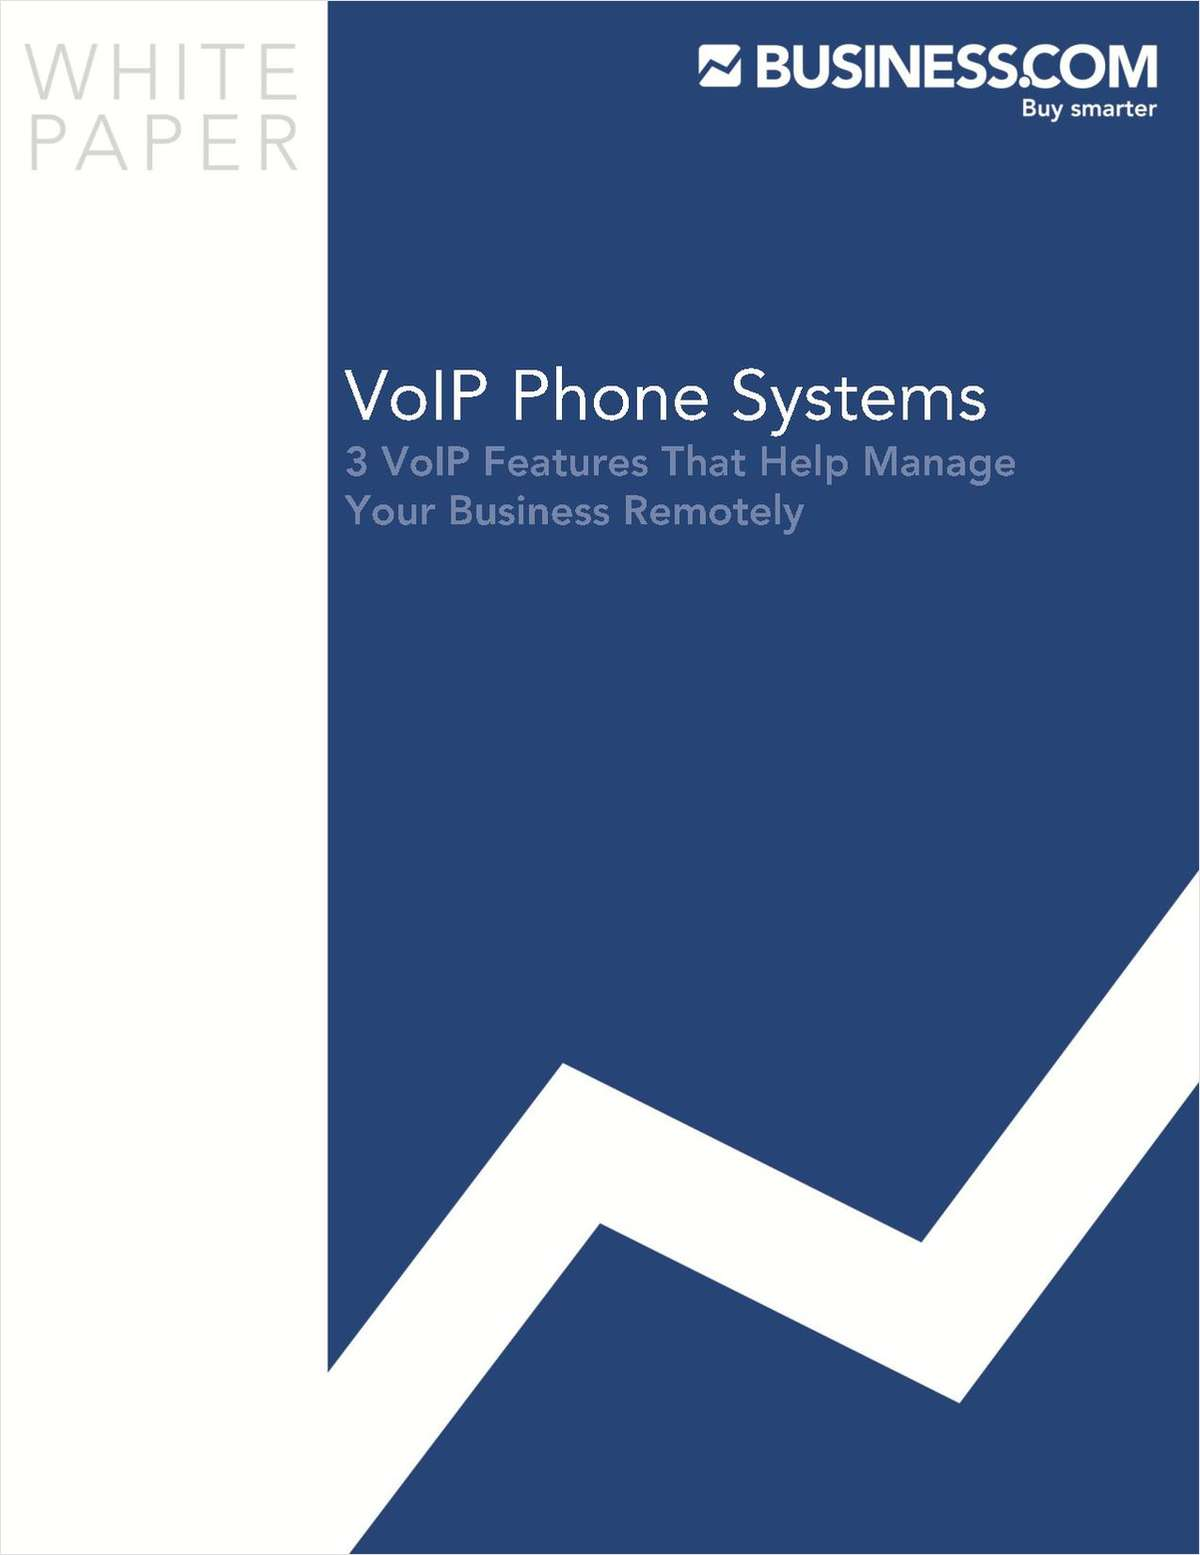 3 VoIP Features That Help Manage Your Business Remotely